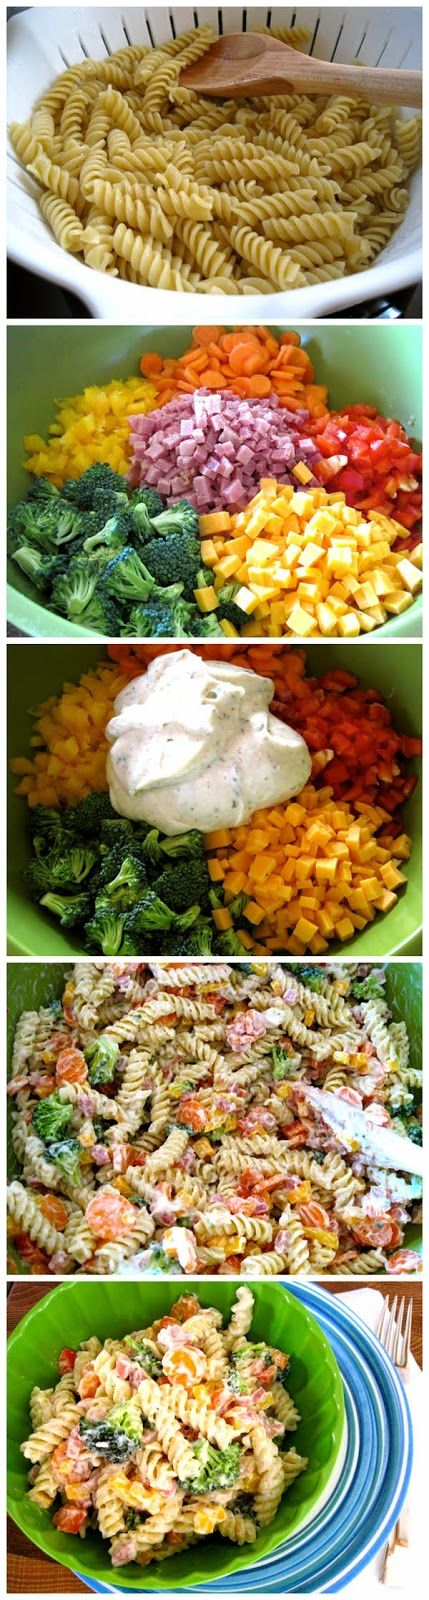 Ranch Pasta Salad (dressing = miracle whip, greek yogurt and ranch mix) - minus the broccoli..